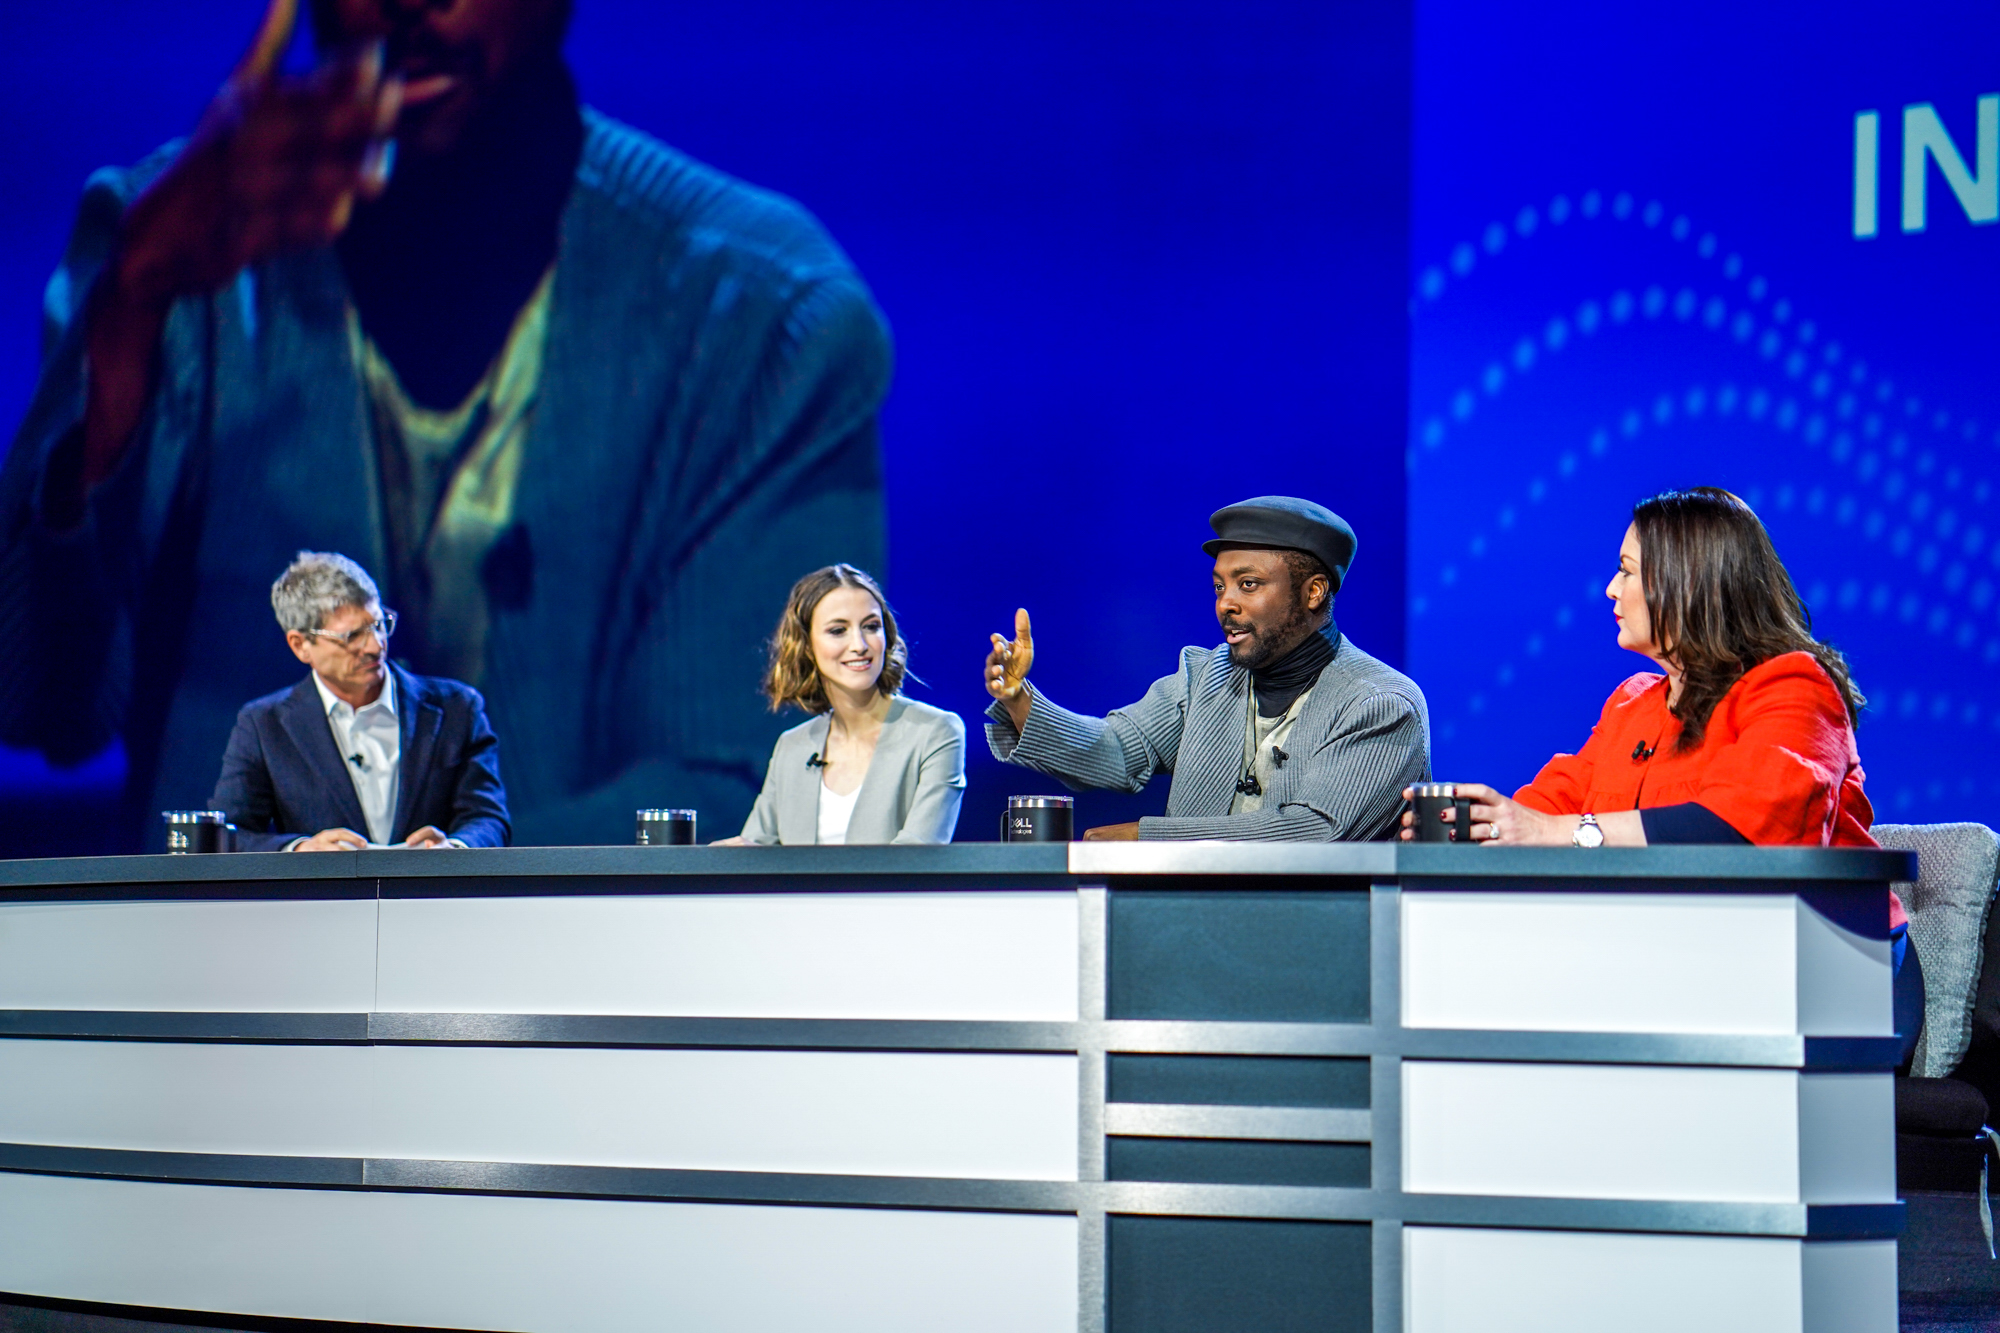 Will.i.am, Dell Chief Marketing Officer Allison Dew and Mirror CEO Brynn Putnam speak at the Dell Technologies World 2019 conference.